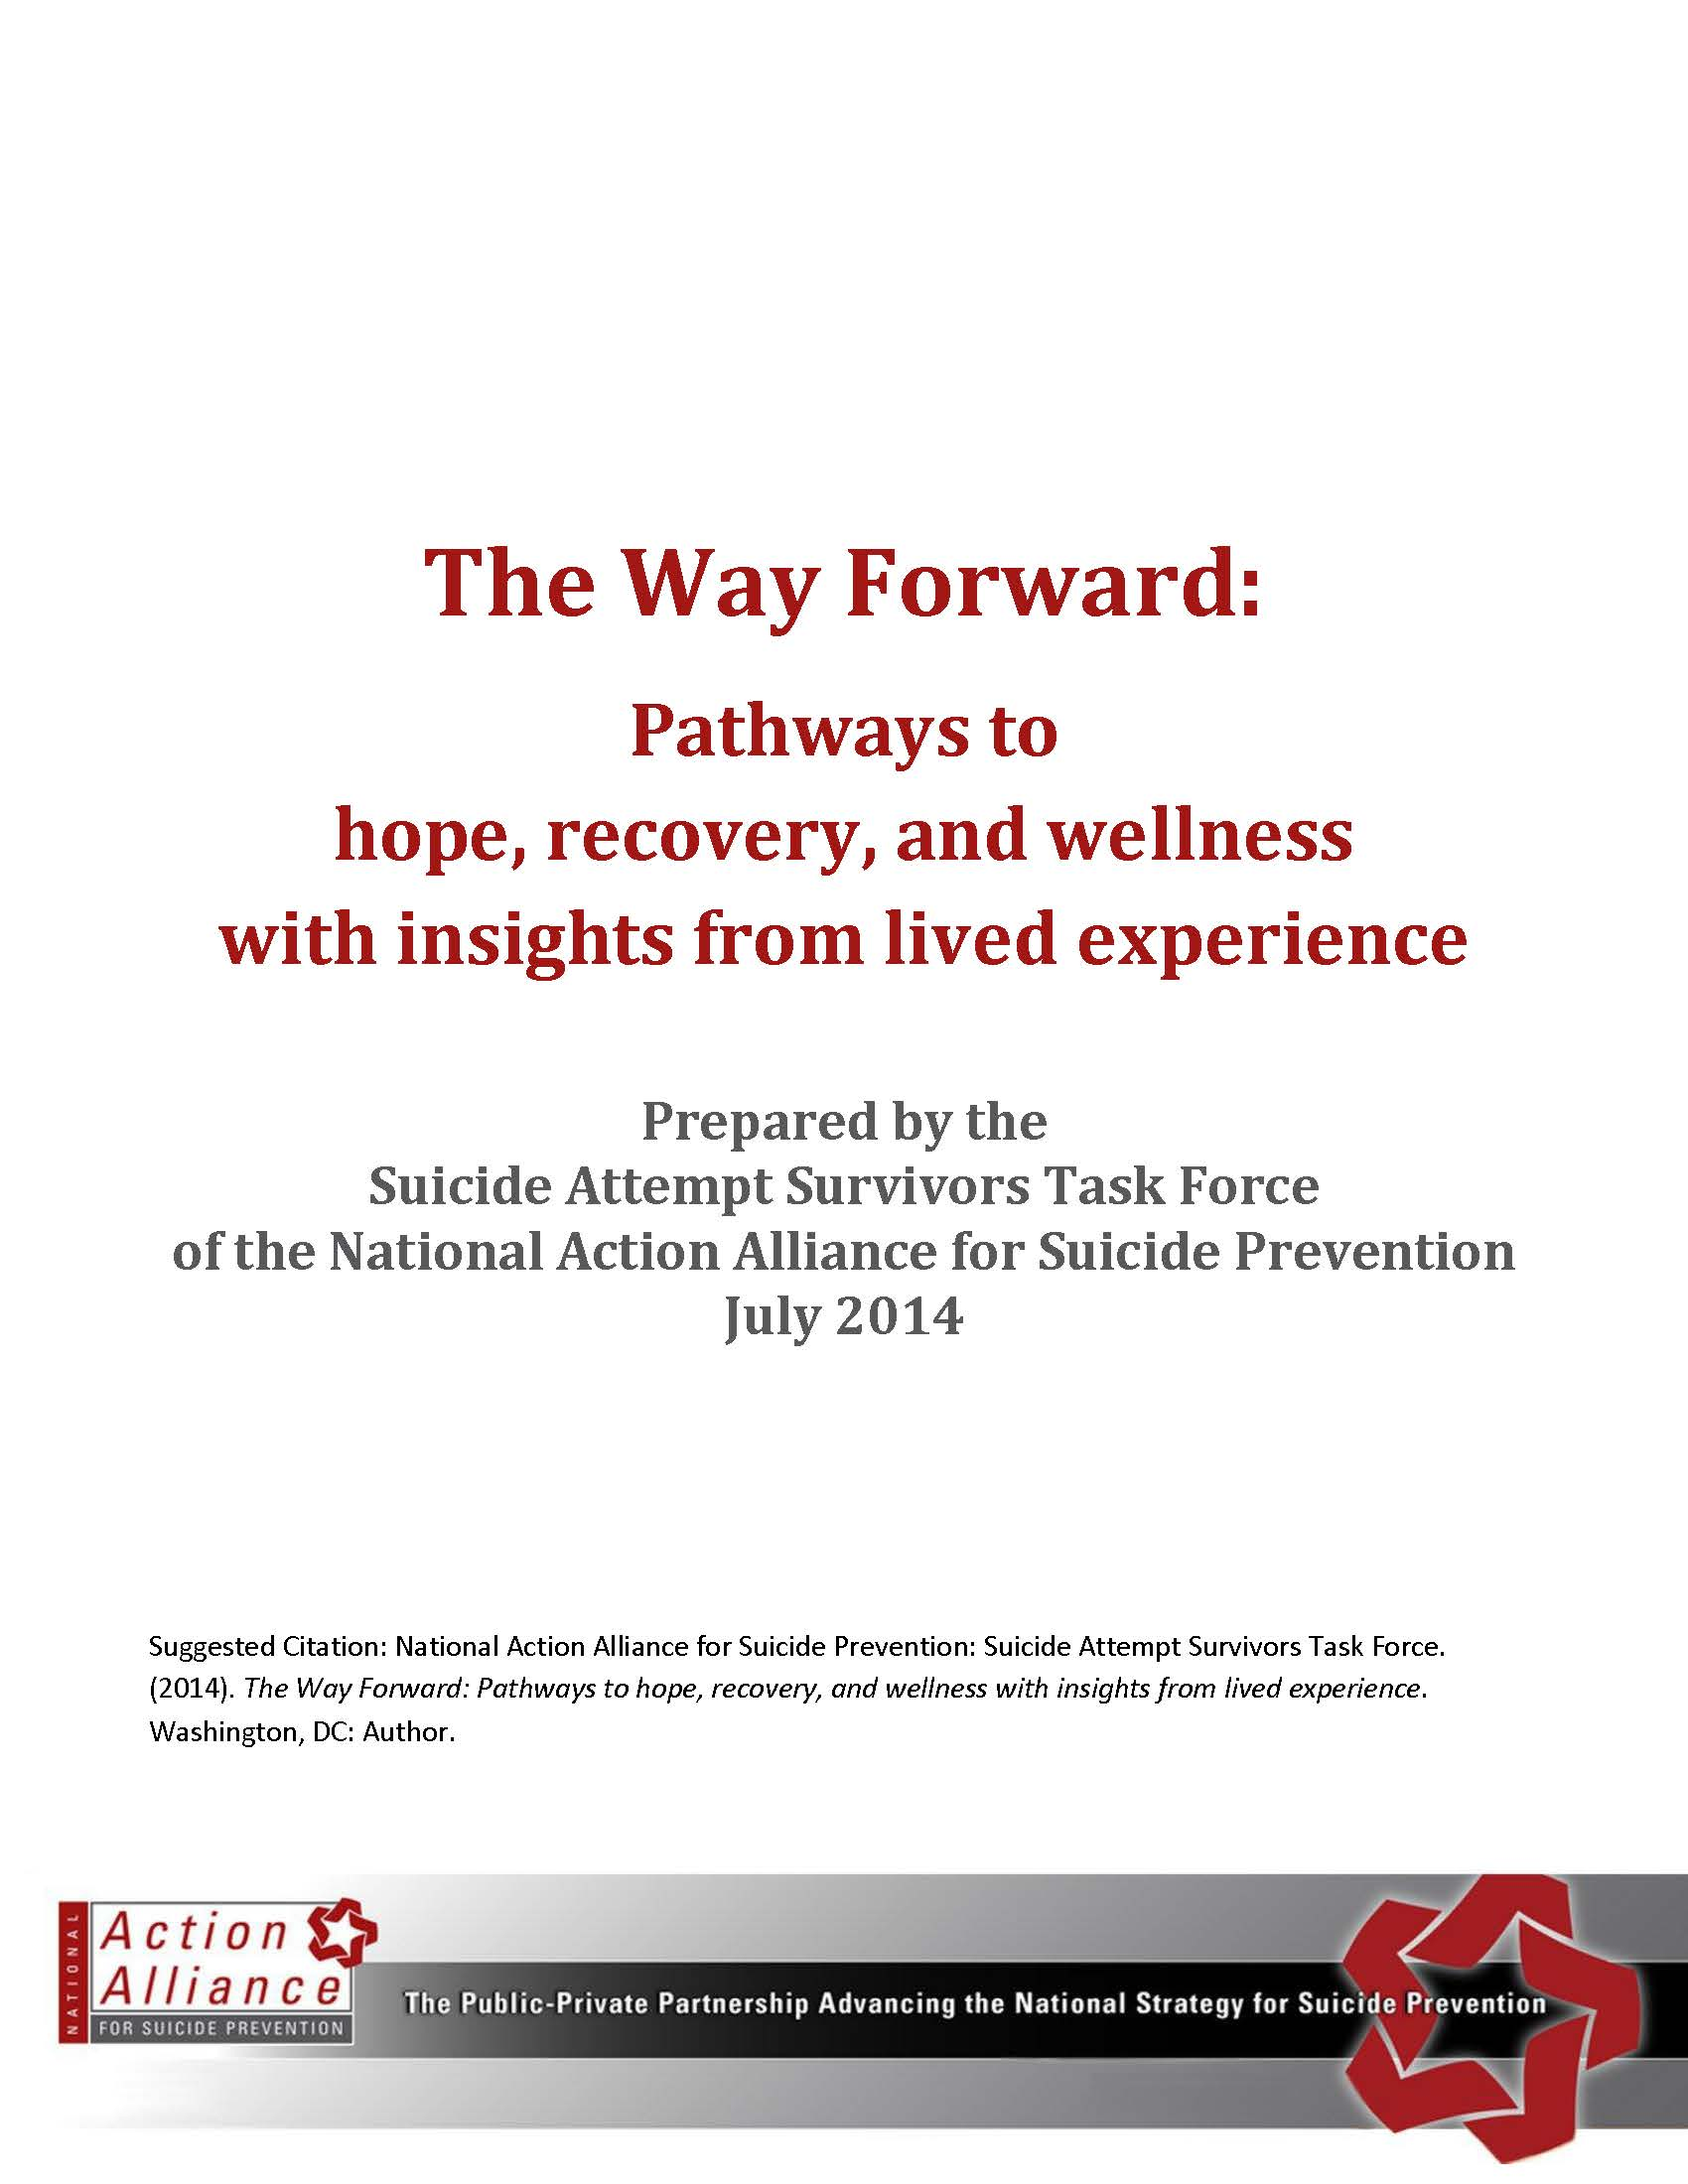 The Way Forward: Pathways to hope, recovery, and wellness with insights from lived experience